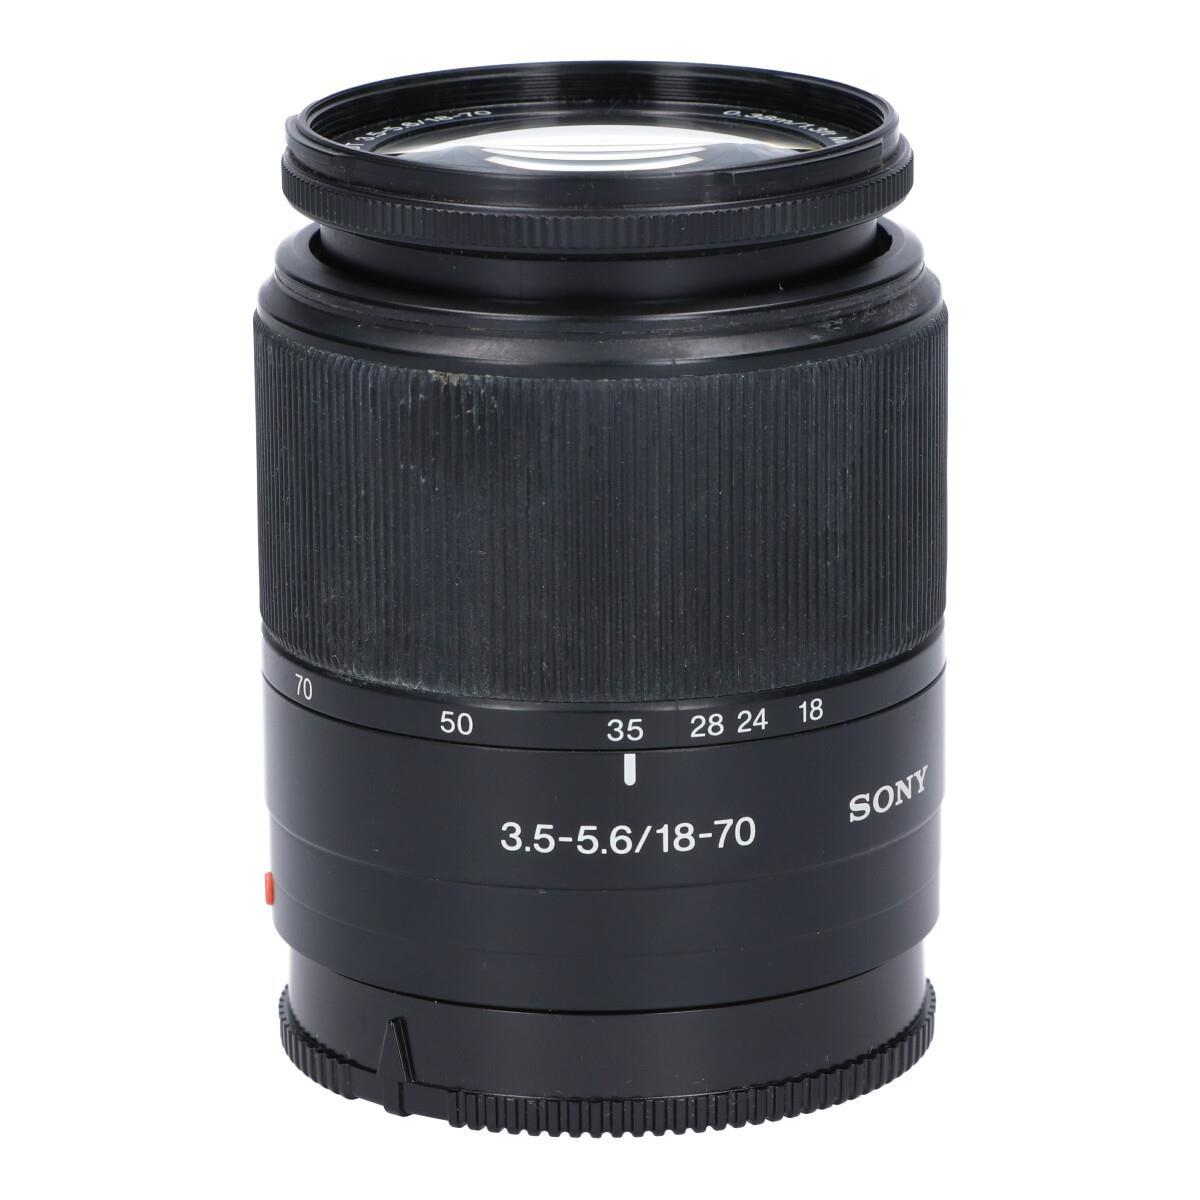 SONY DT18-70mm F3.5-5.6